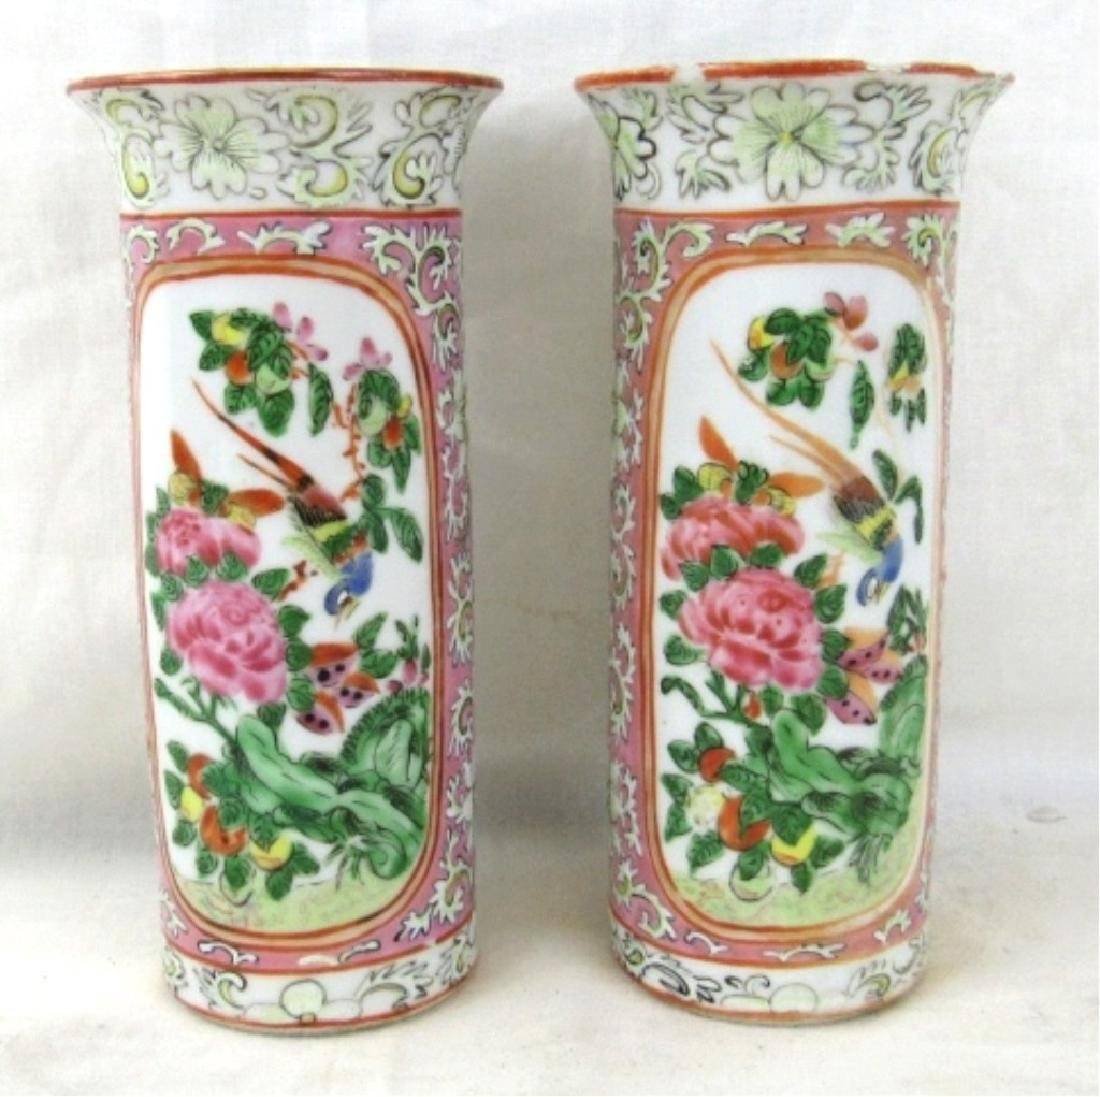 Beautiful Enameled Porcelain Qing Dynasty Vases